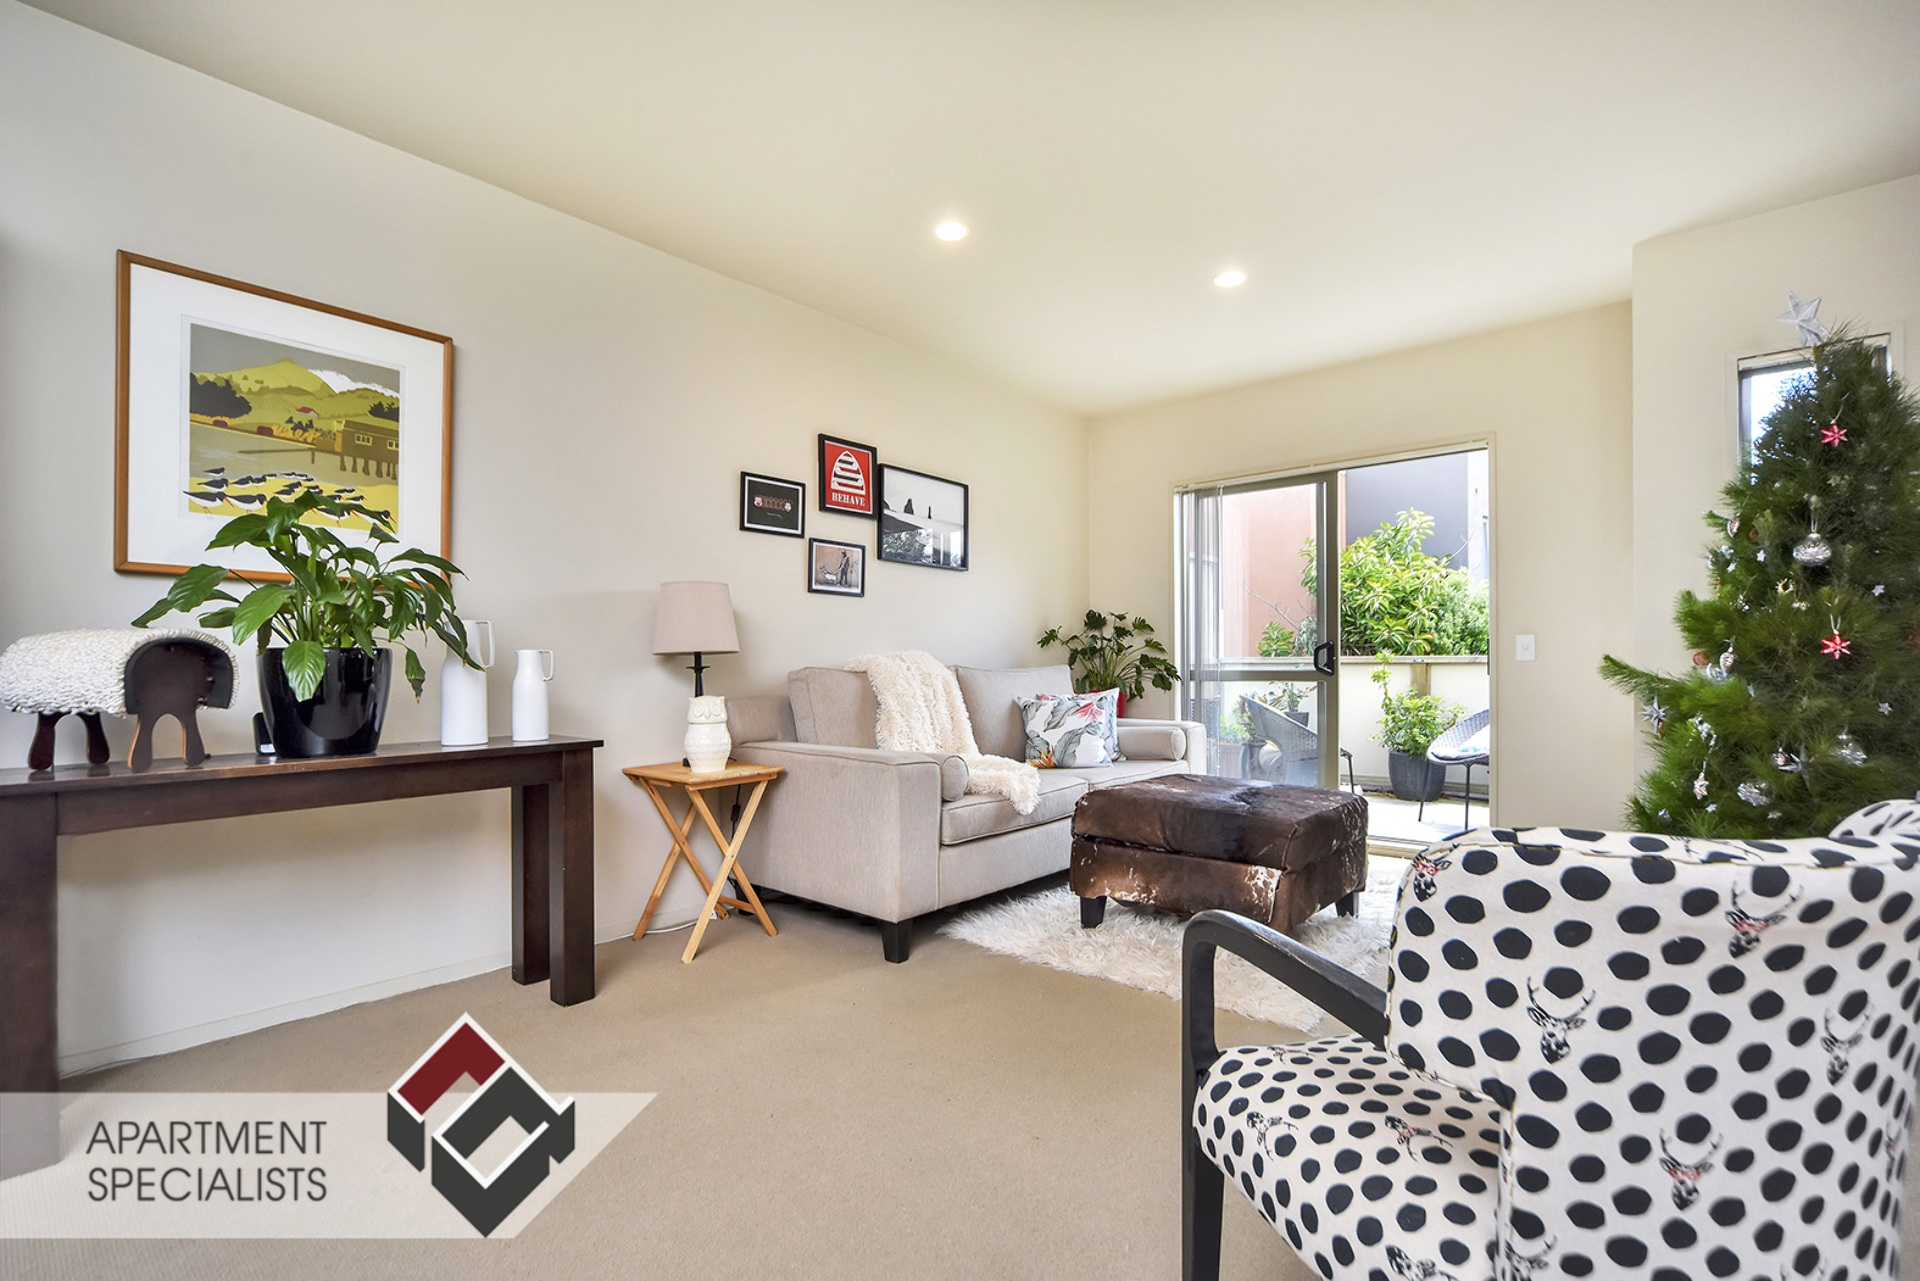 14 | 21 Hunters Park Drive, Three Kings | Apartment Specialists